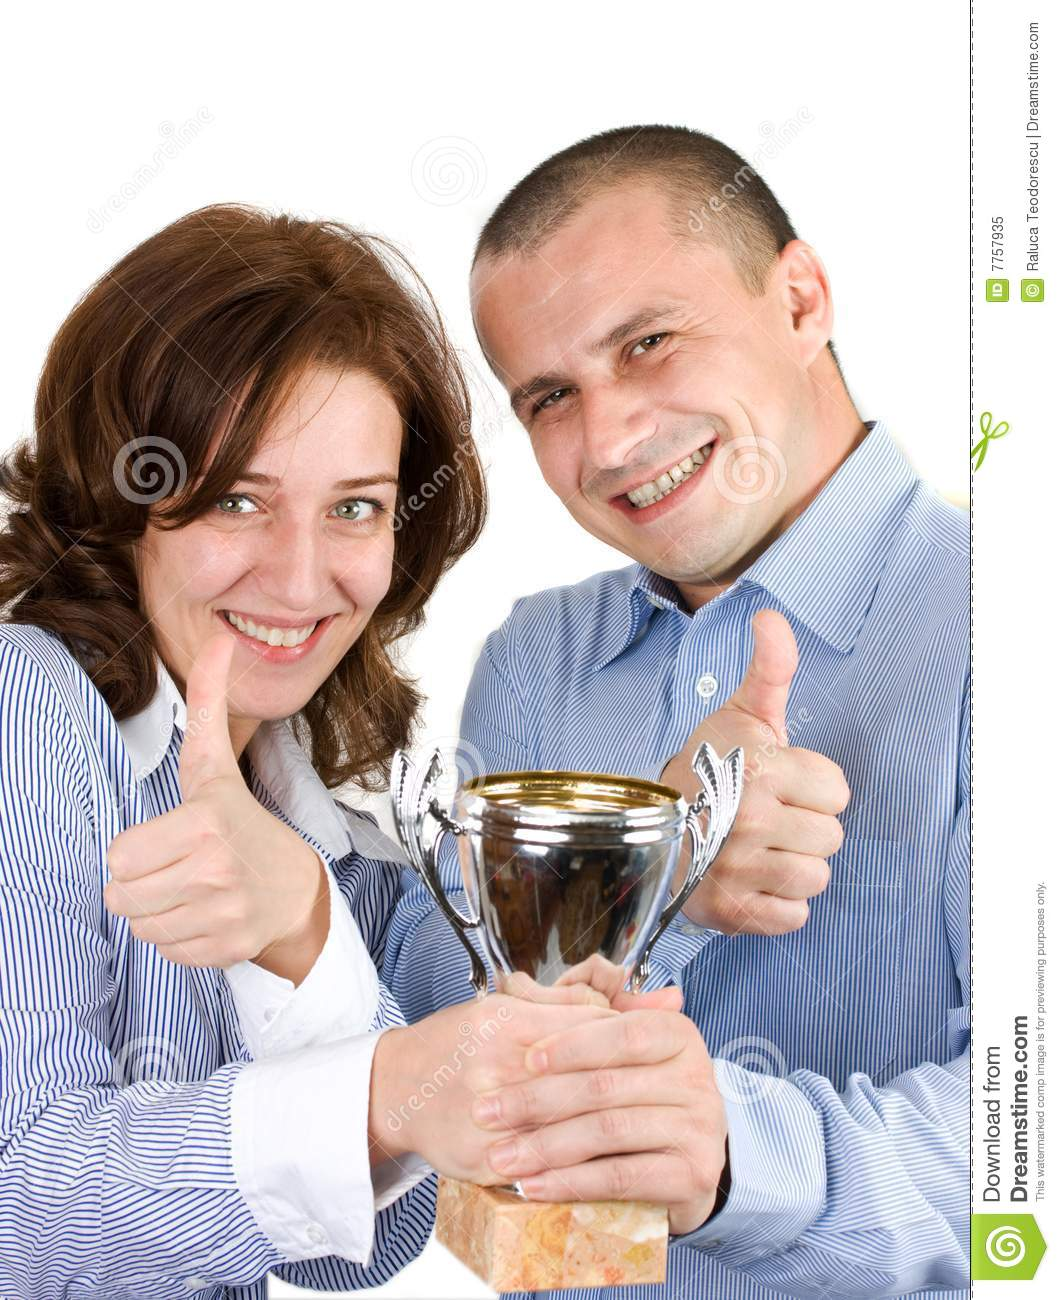 Businessteam With Trophy Over White Background Royalty Free Stock Photo Image 7757935